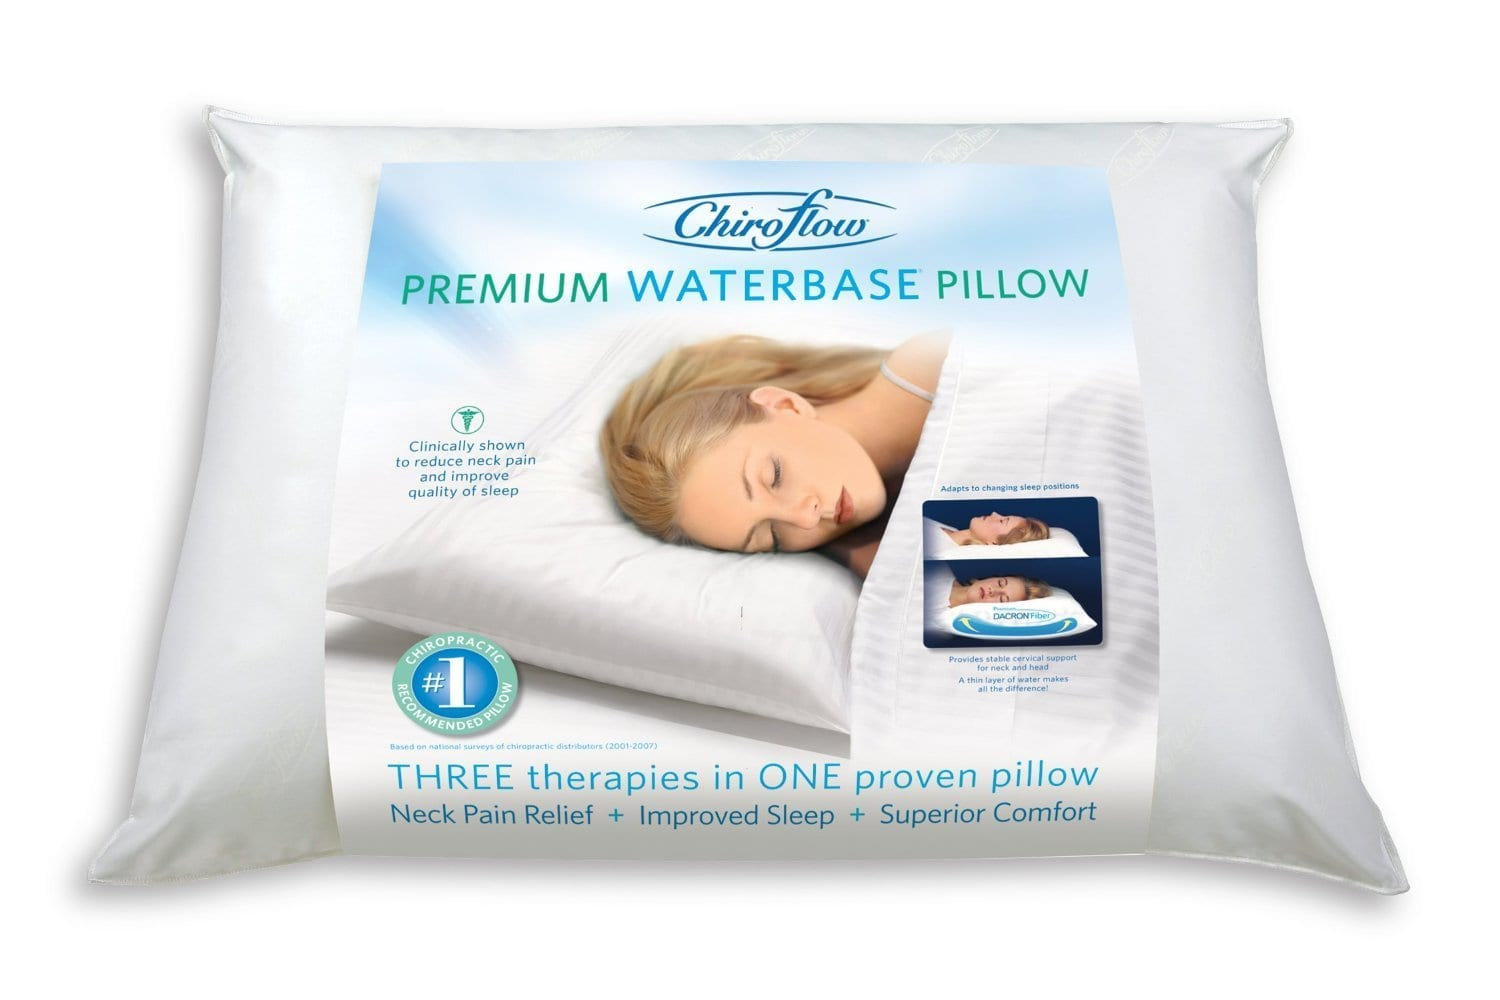 Chiroflow Orthopedic Pillow Review by www.snoremagazine.com